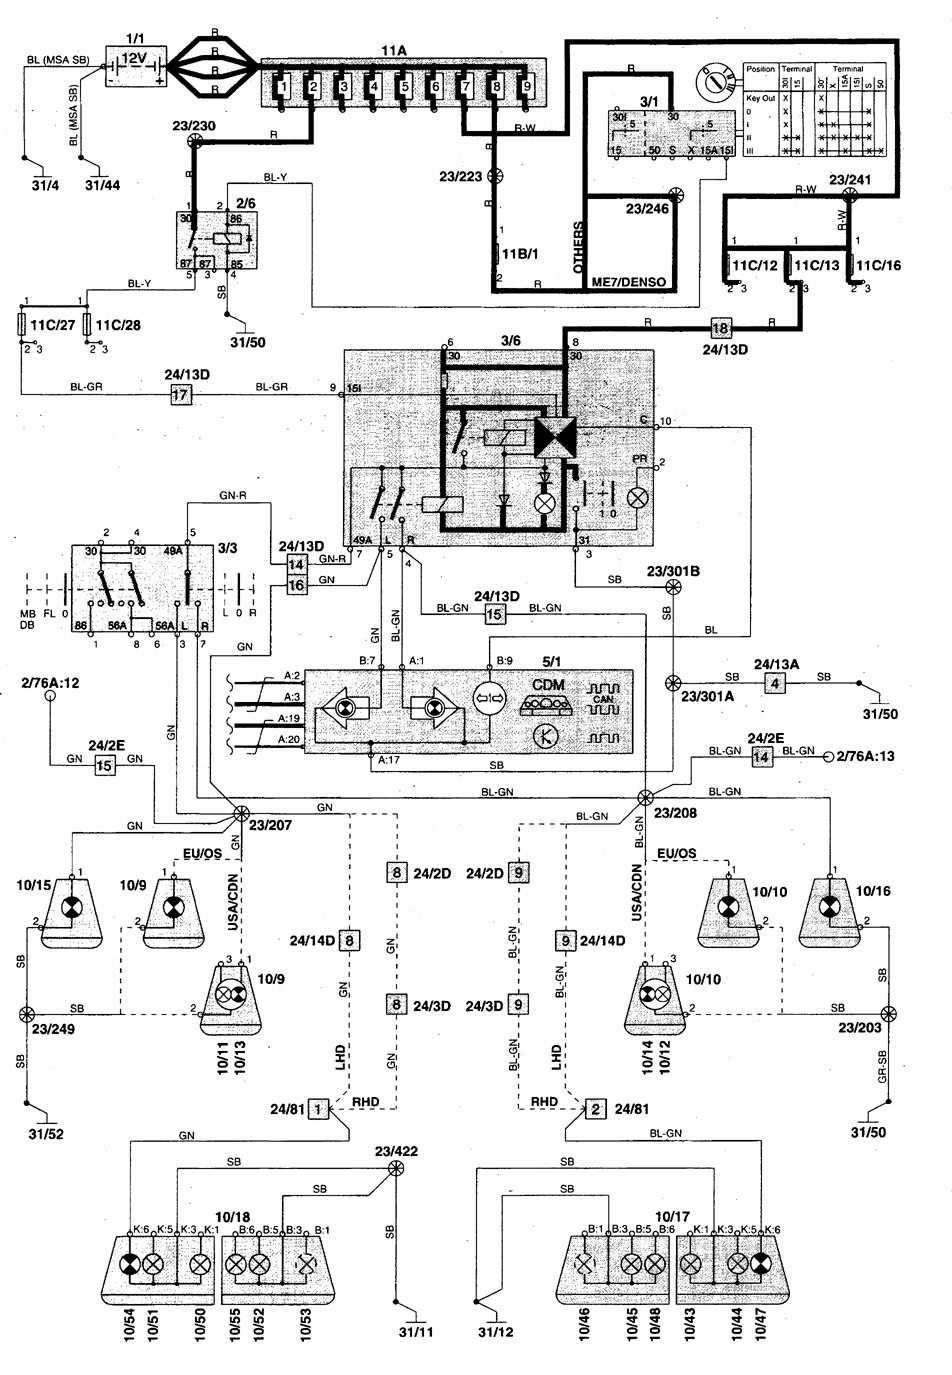 Wiring Diagram For 2000 Volvo S80 : Volvo s wiring diagram